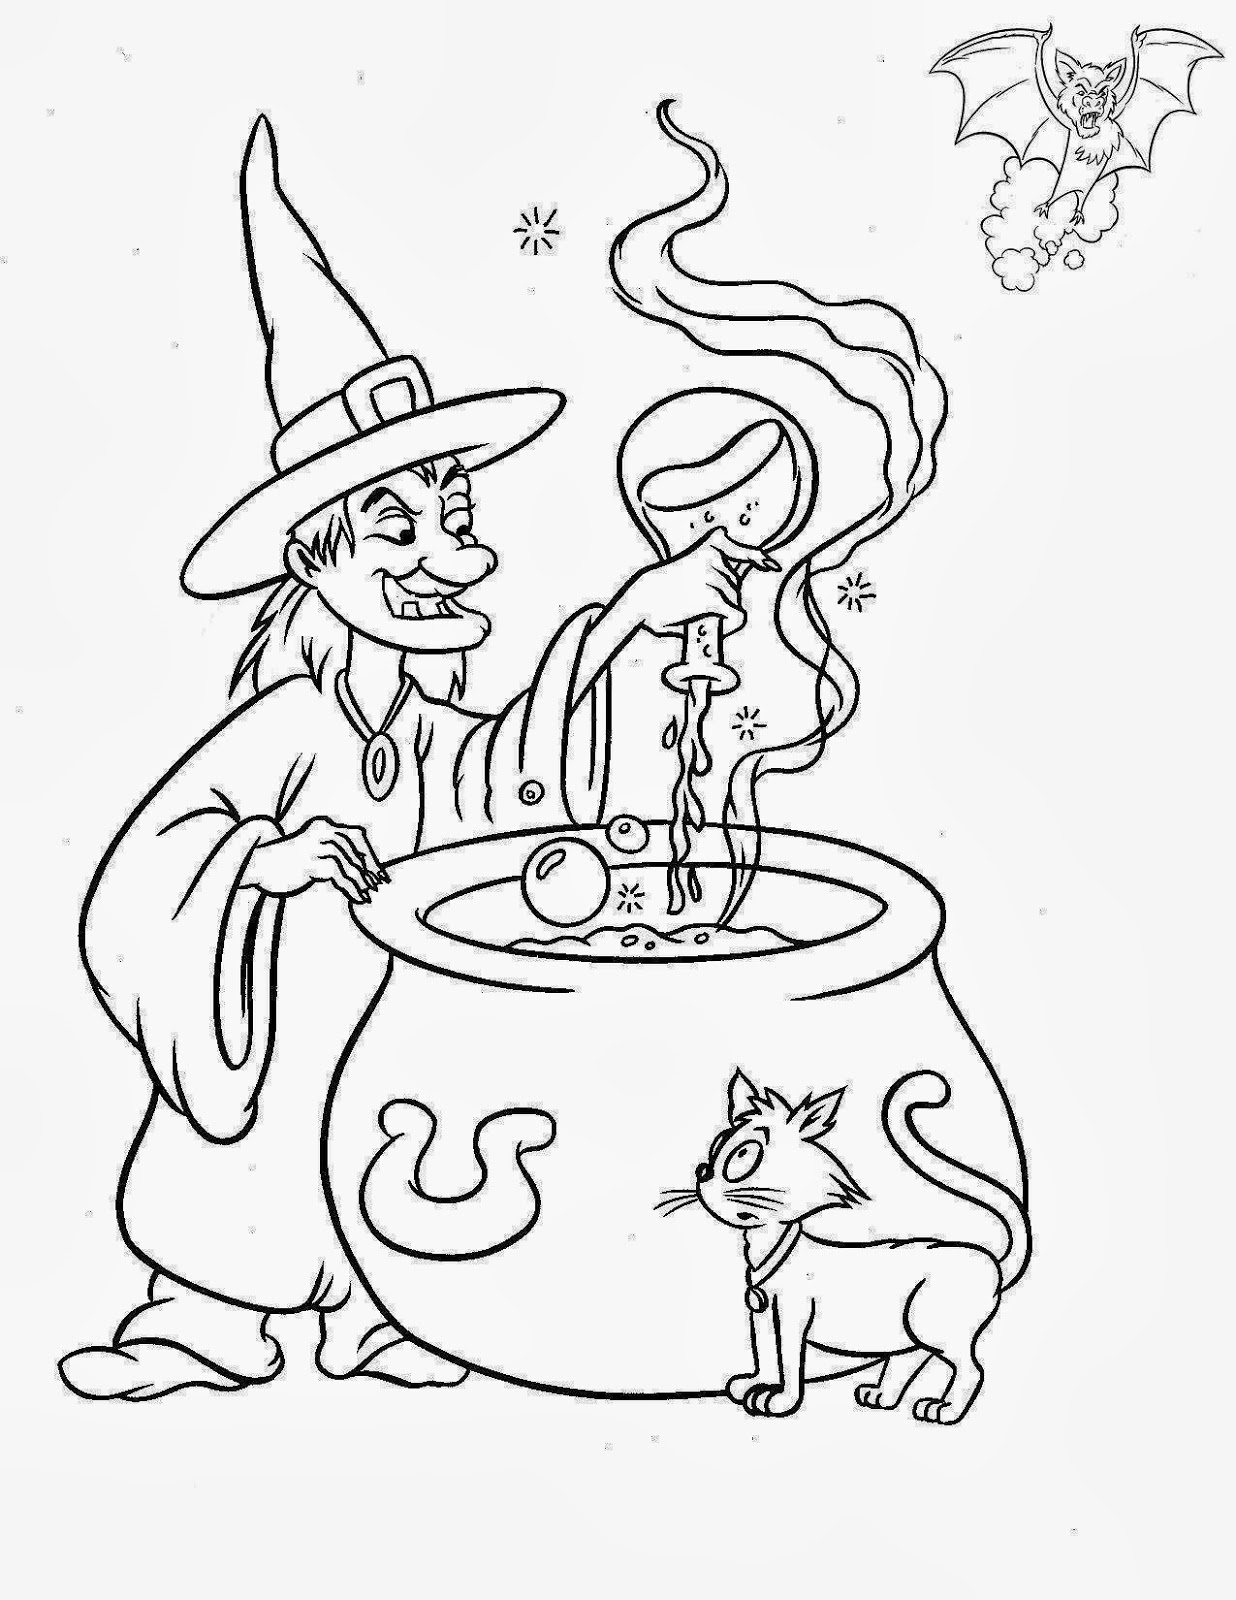 coloring printable witch cute little witch coloring pages for kids halloween witch printable coloring